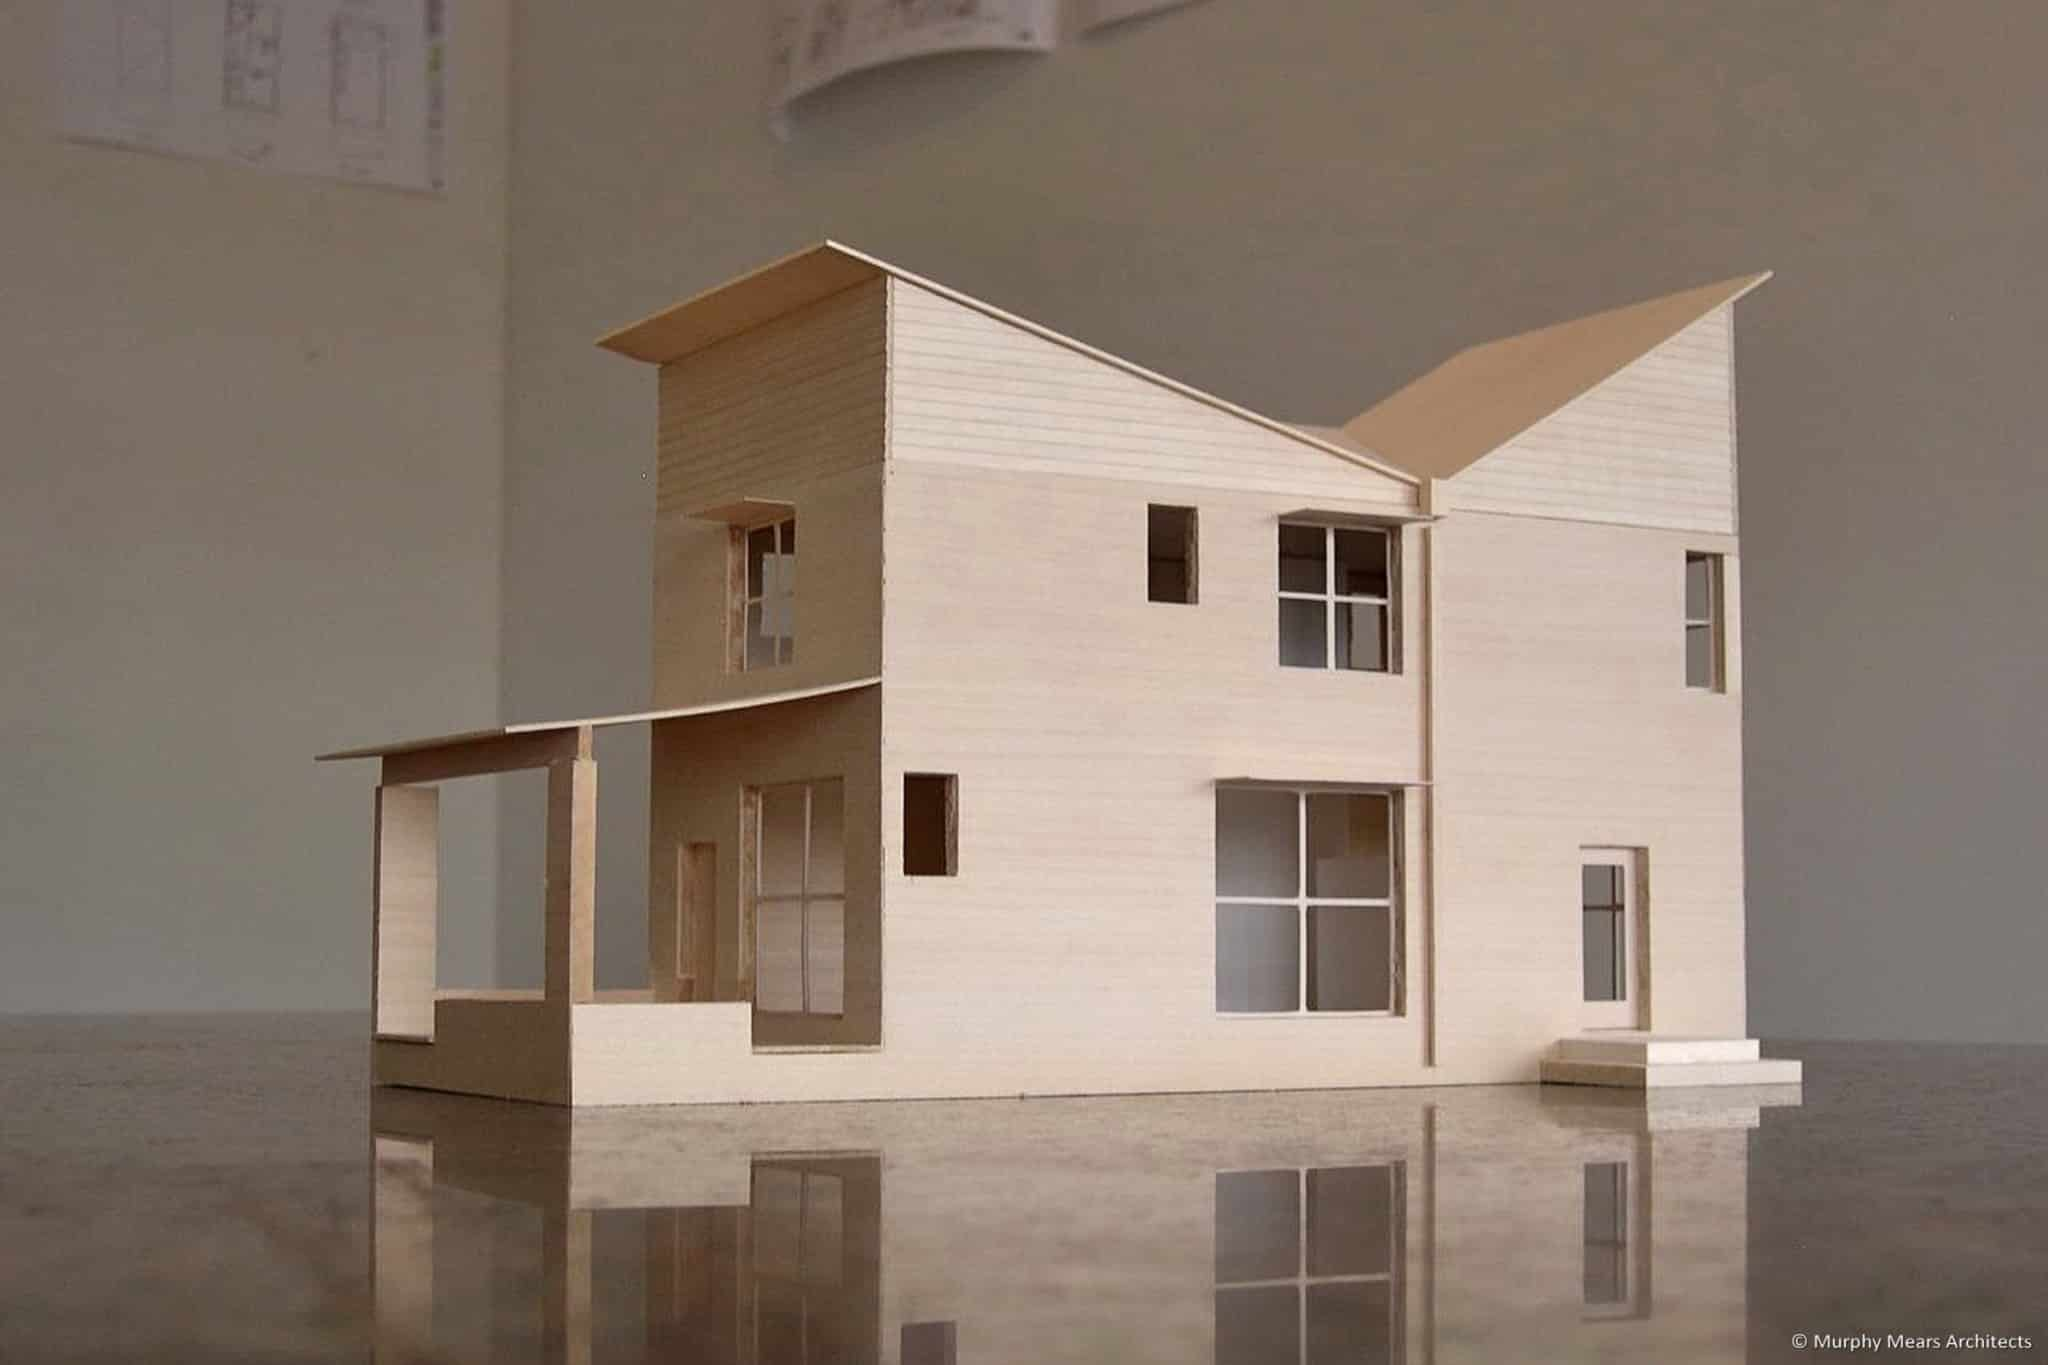 Wood model of AAC block house with rainwater-collecting butterfly roof.